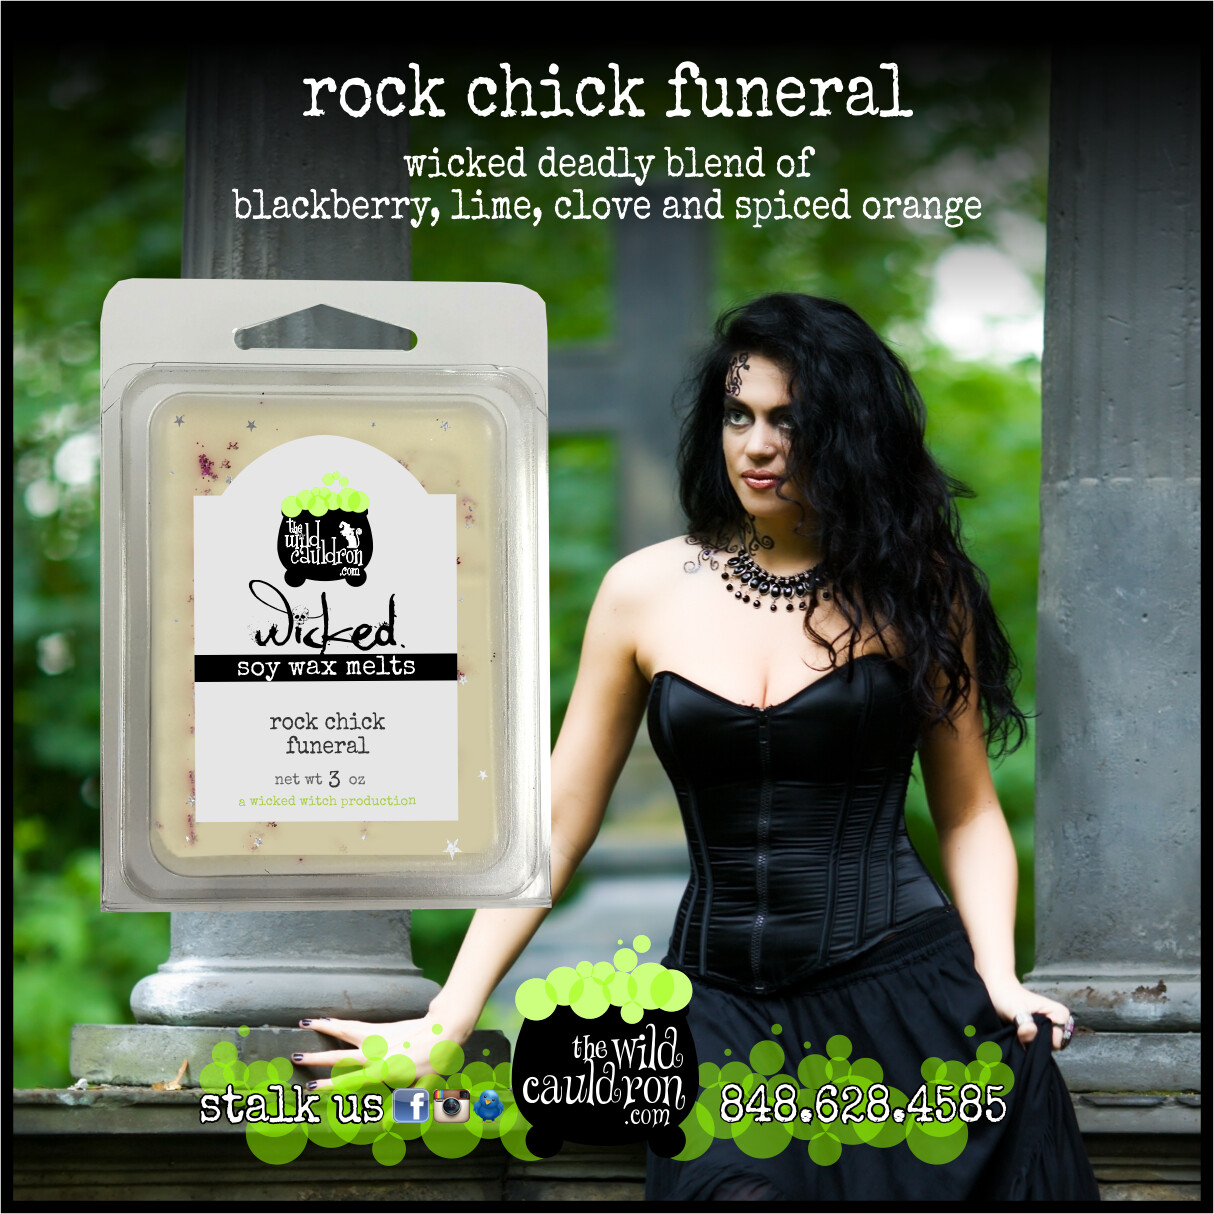 Rock Chick Funeral Wicked Wax Melts